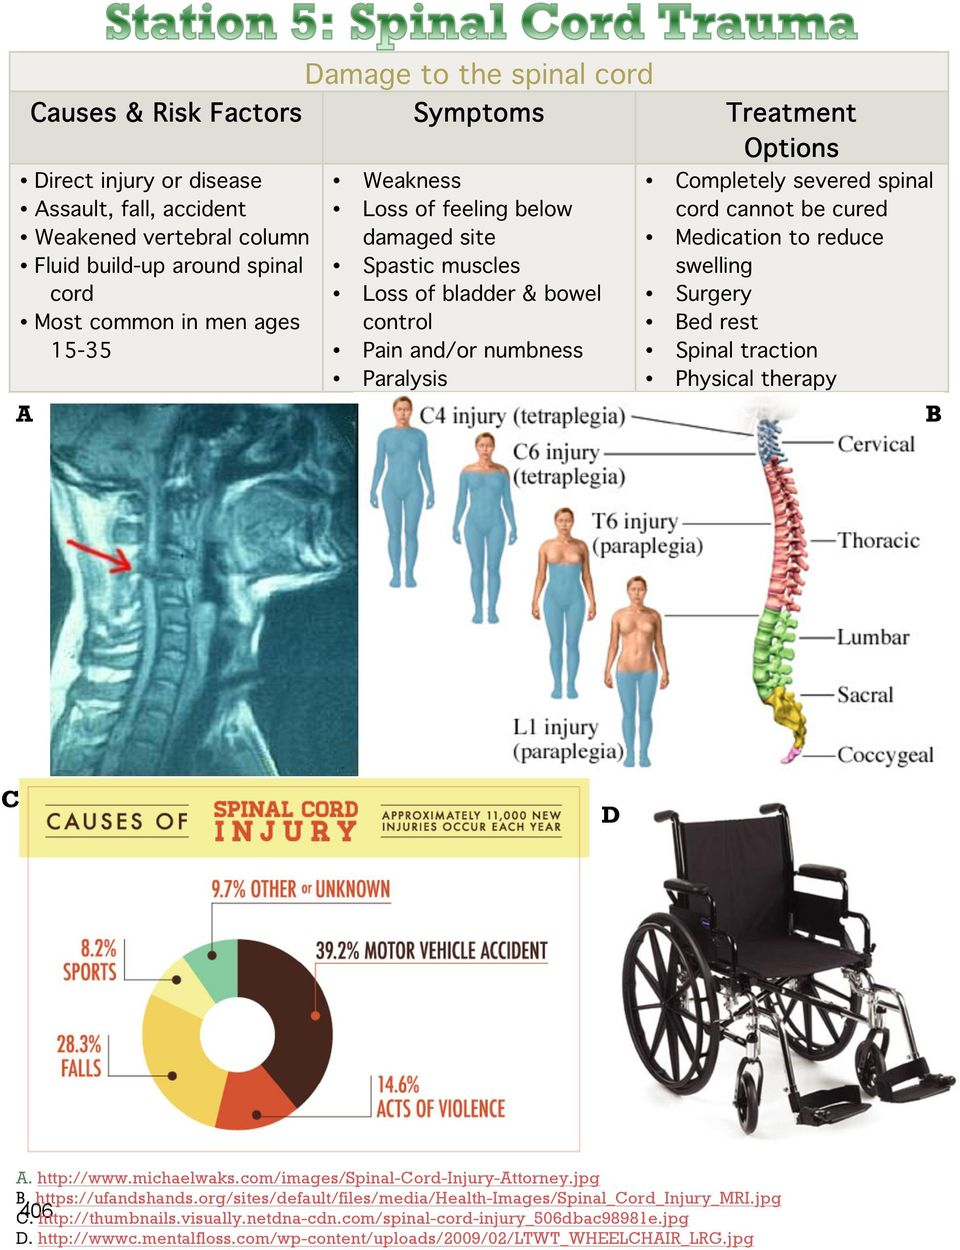 to reduce swelling Surgery Bed rest Spinal traction Physical therapy B C C D A. http://www.michaelwaks.com/images/spinal-cord-injury-attorney.jpg C B. https://ufandshands.